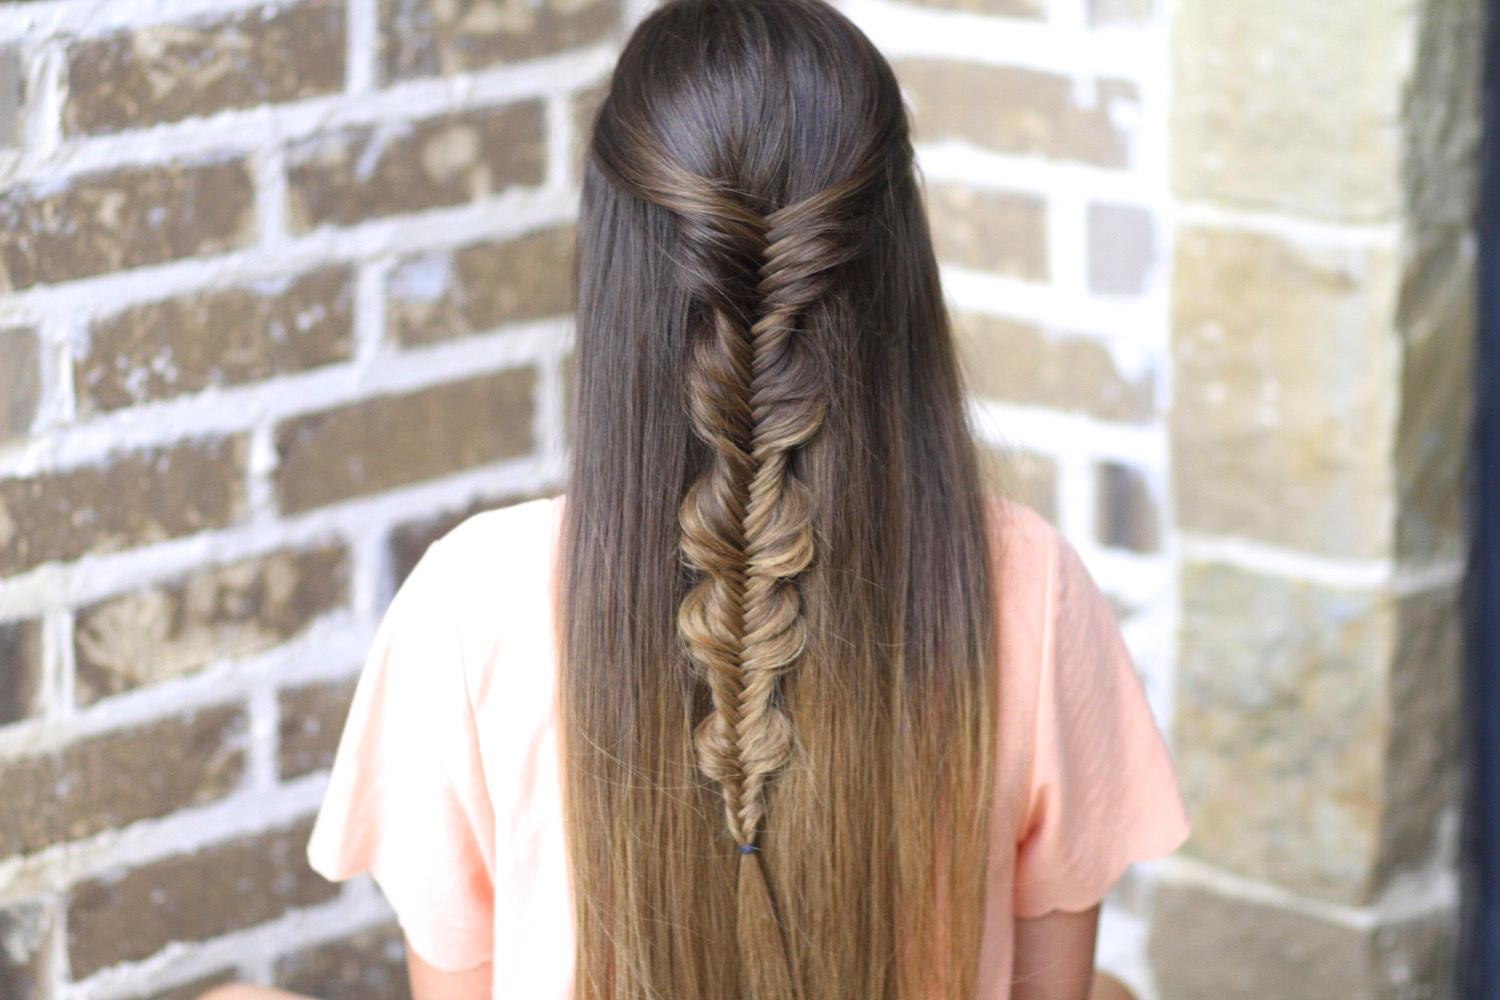 The No Band Bubble Fishtail Braid Cute Girls Hairstyles